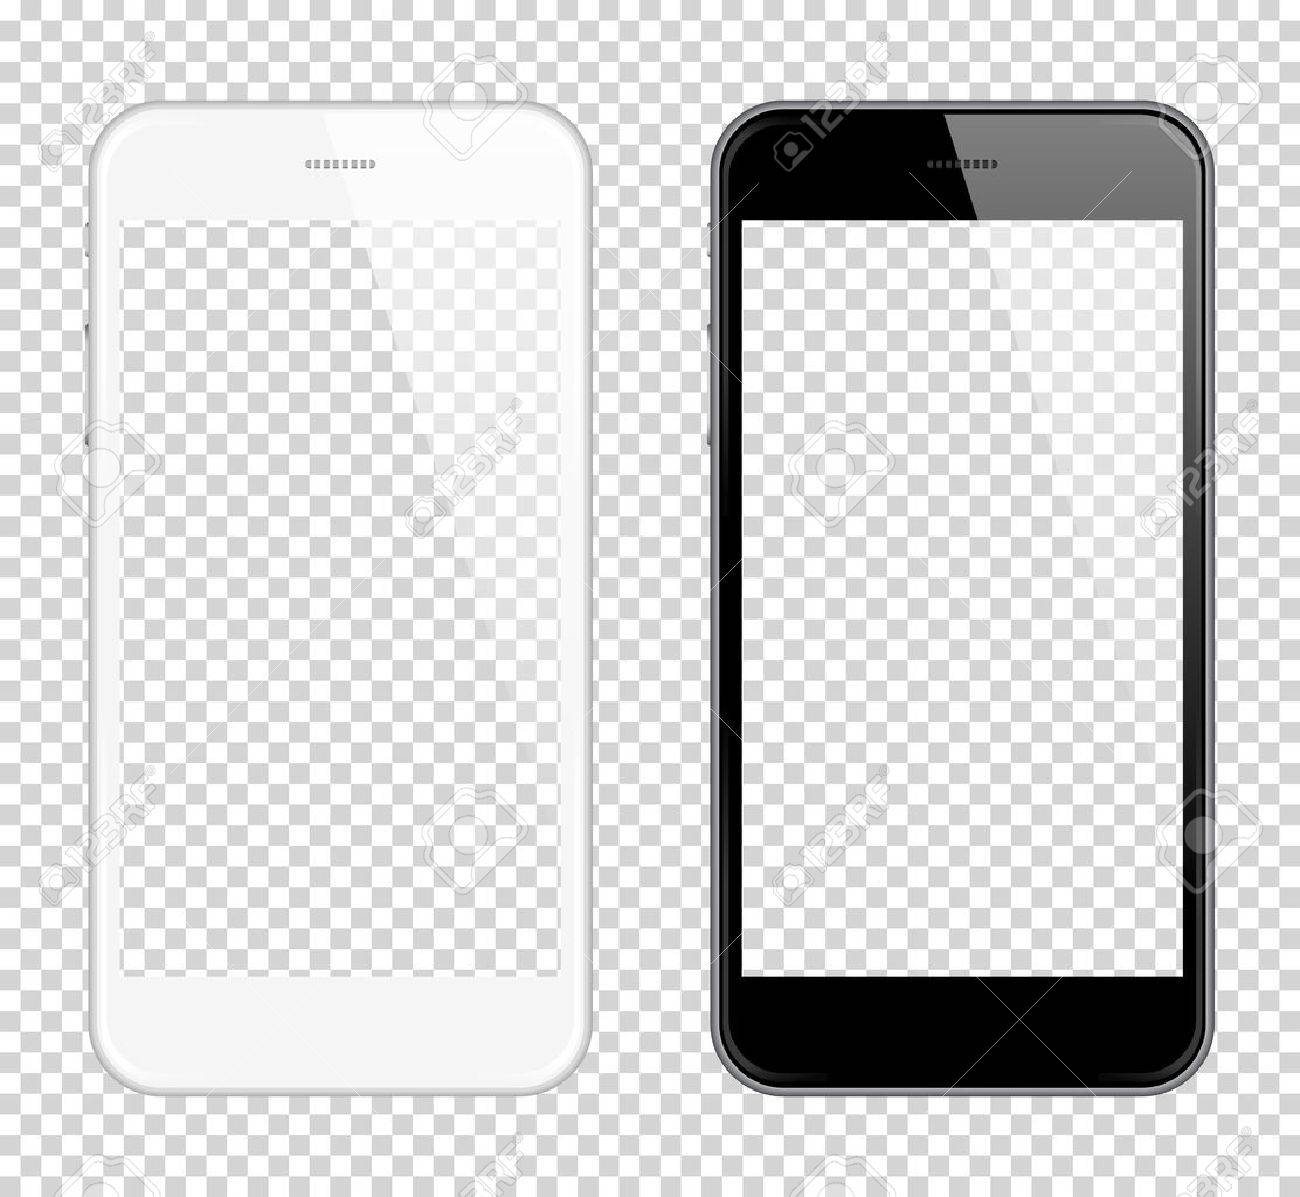 Realistic smart phone Vector Mock Up. Fully Re-size-able. Easy way to place image into screen Smartphone, for web design showcase, product, presentations, advertising in modern style. Smartphone - 64062861